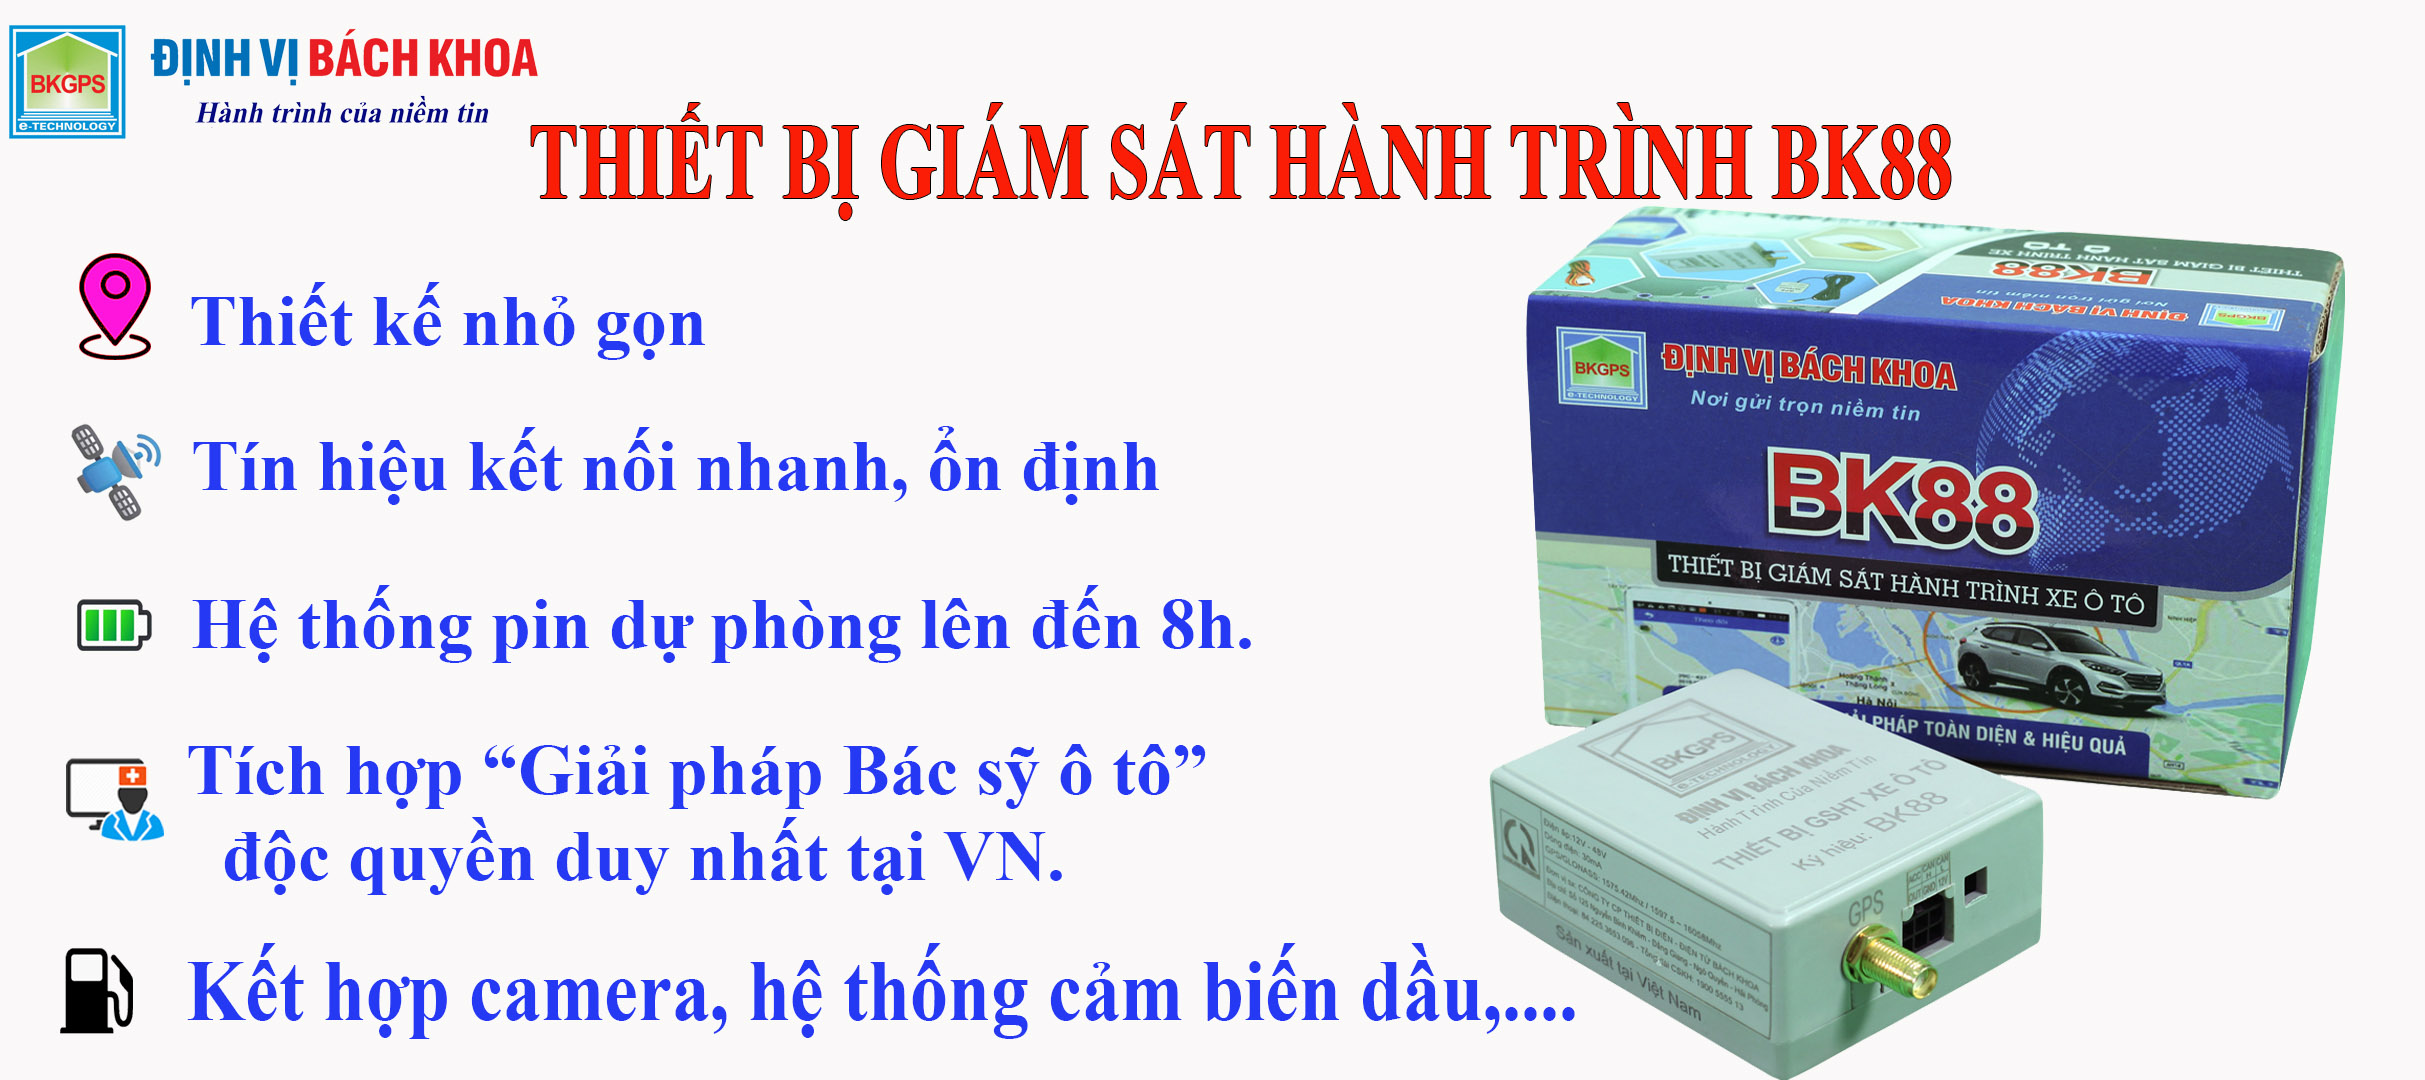 https://dinhvibachkhoa.vn/Images/photo/Articlefiles/Banner/dinh-vi-xe-o-to-bia-2.jpg